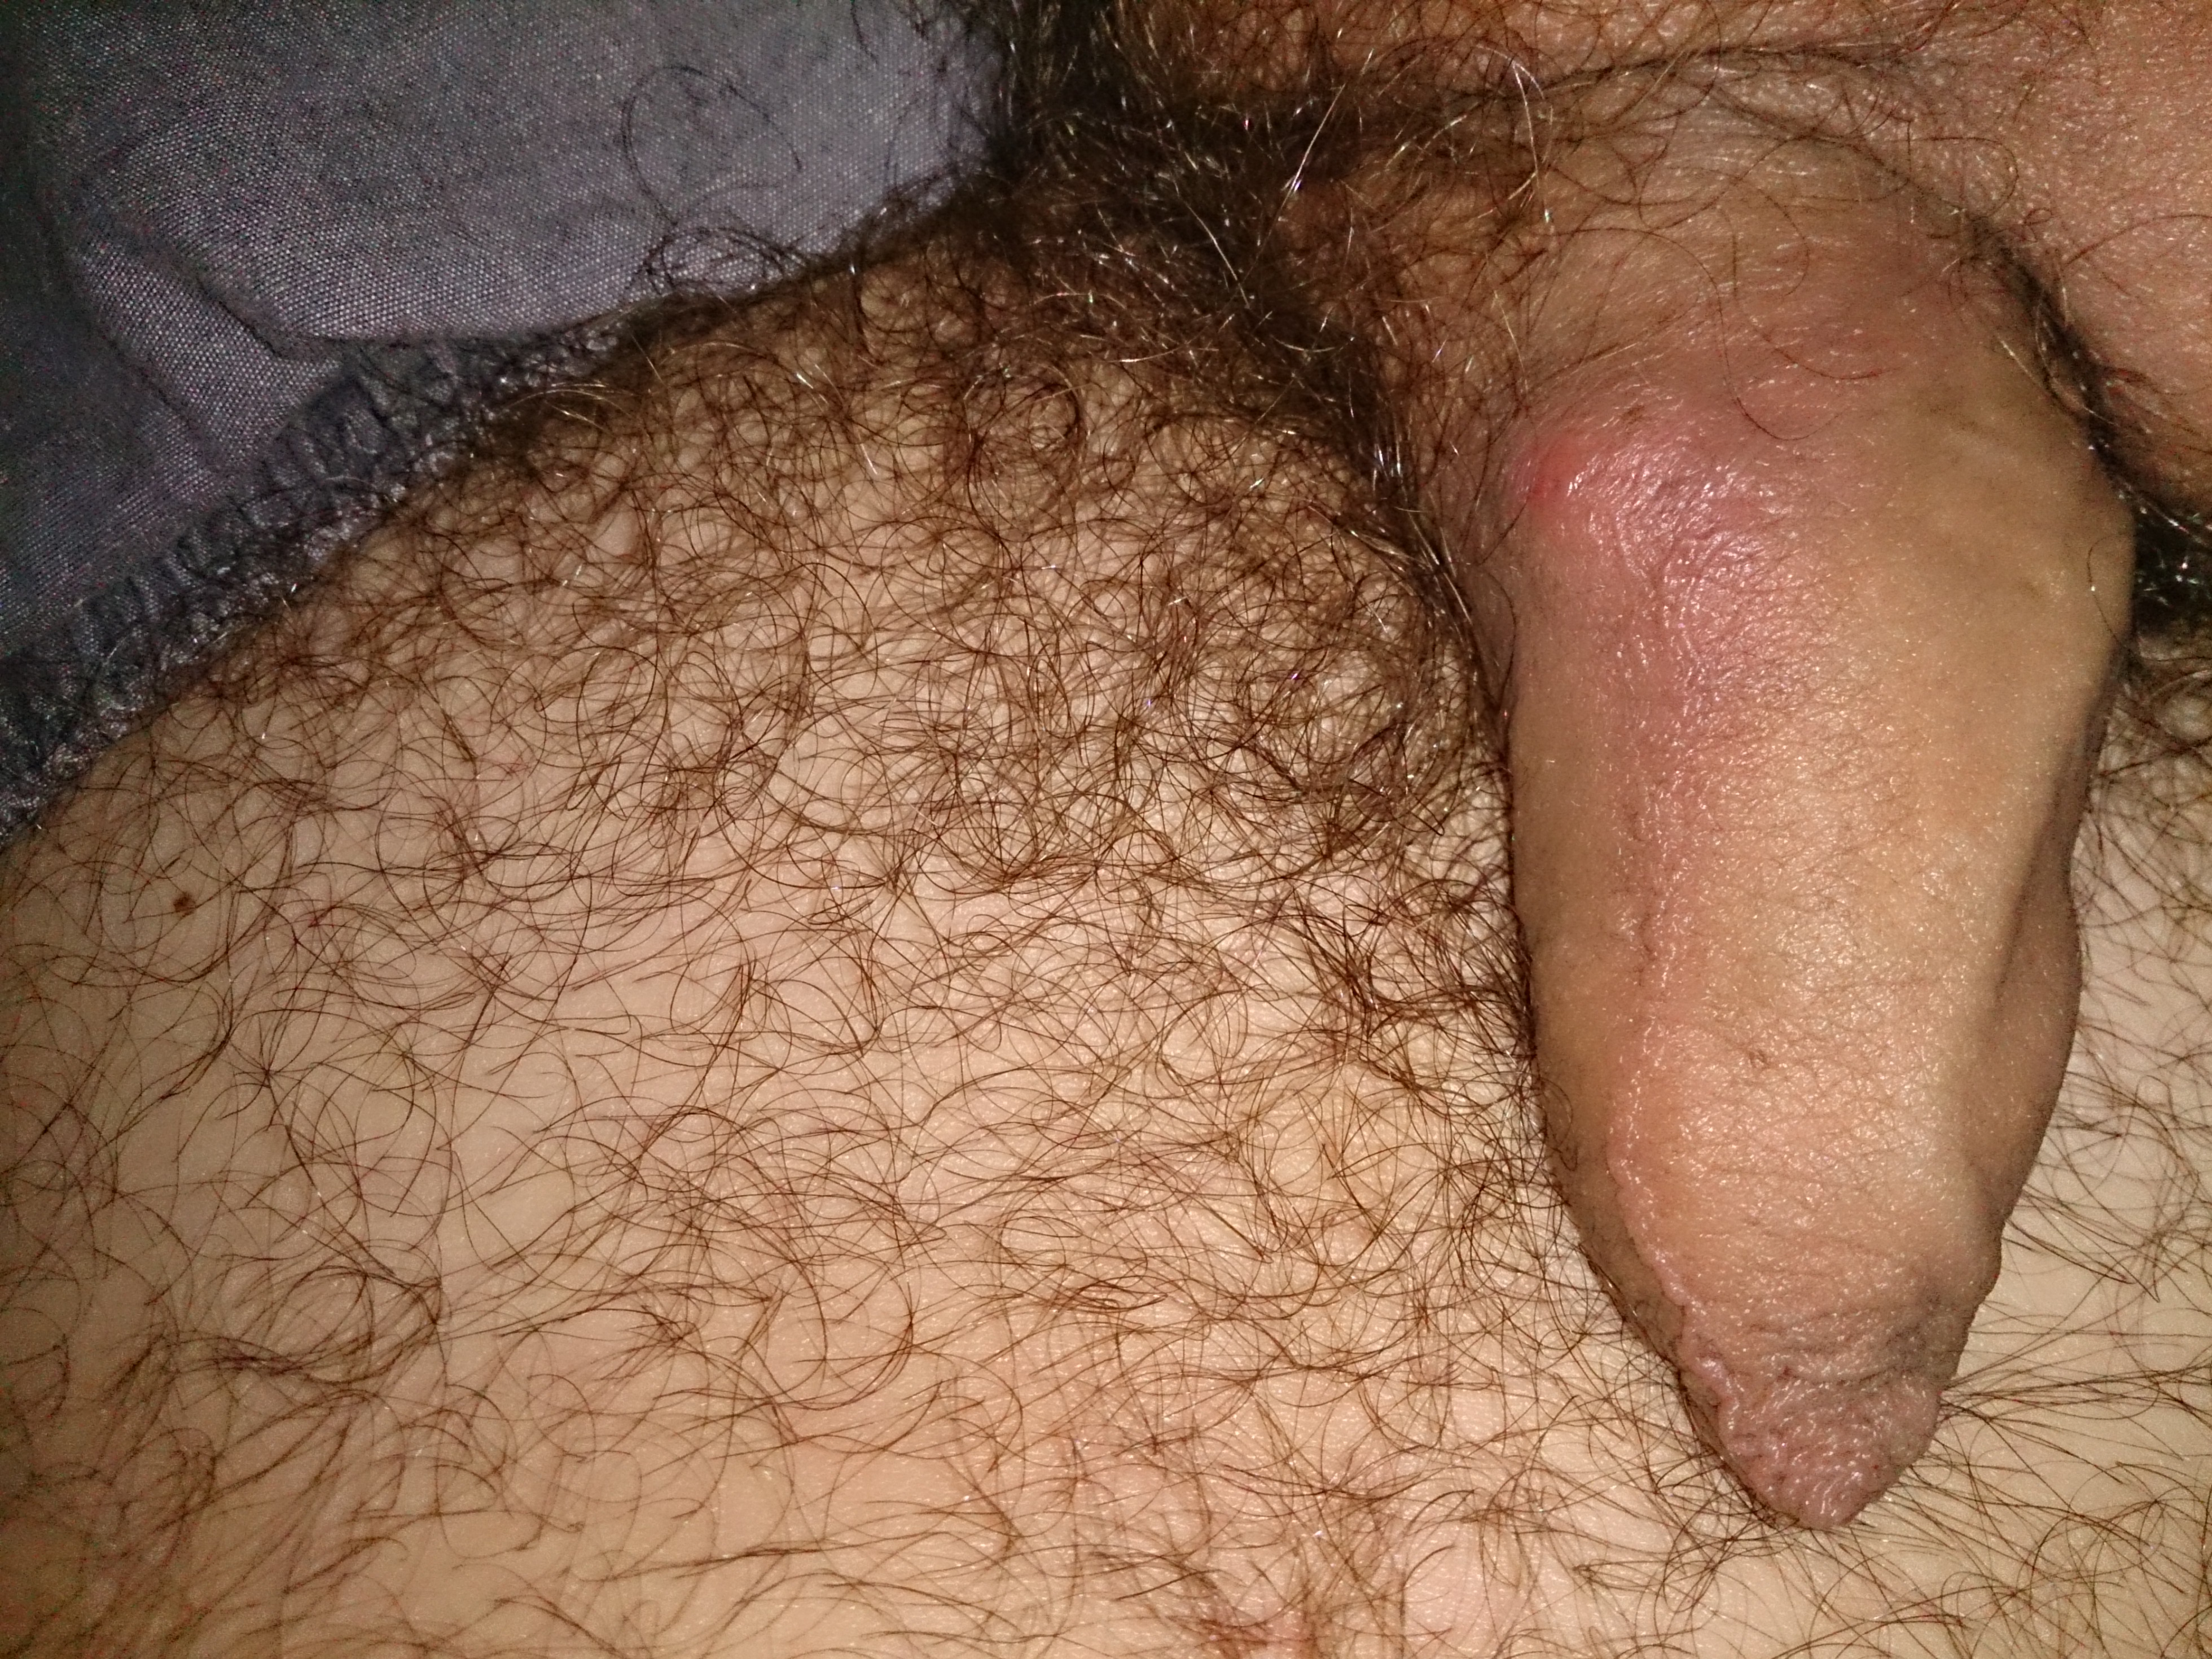 A cyst on the penis